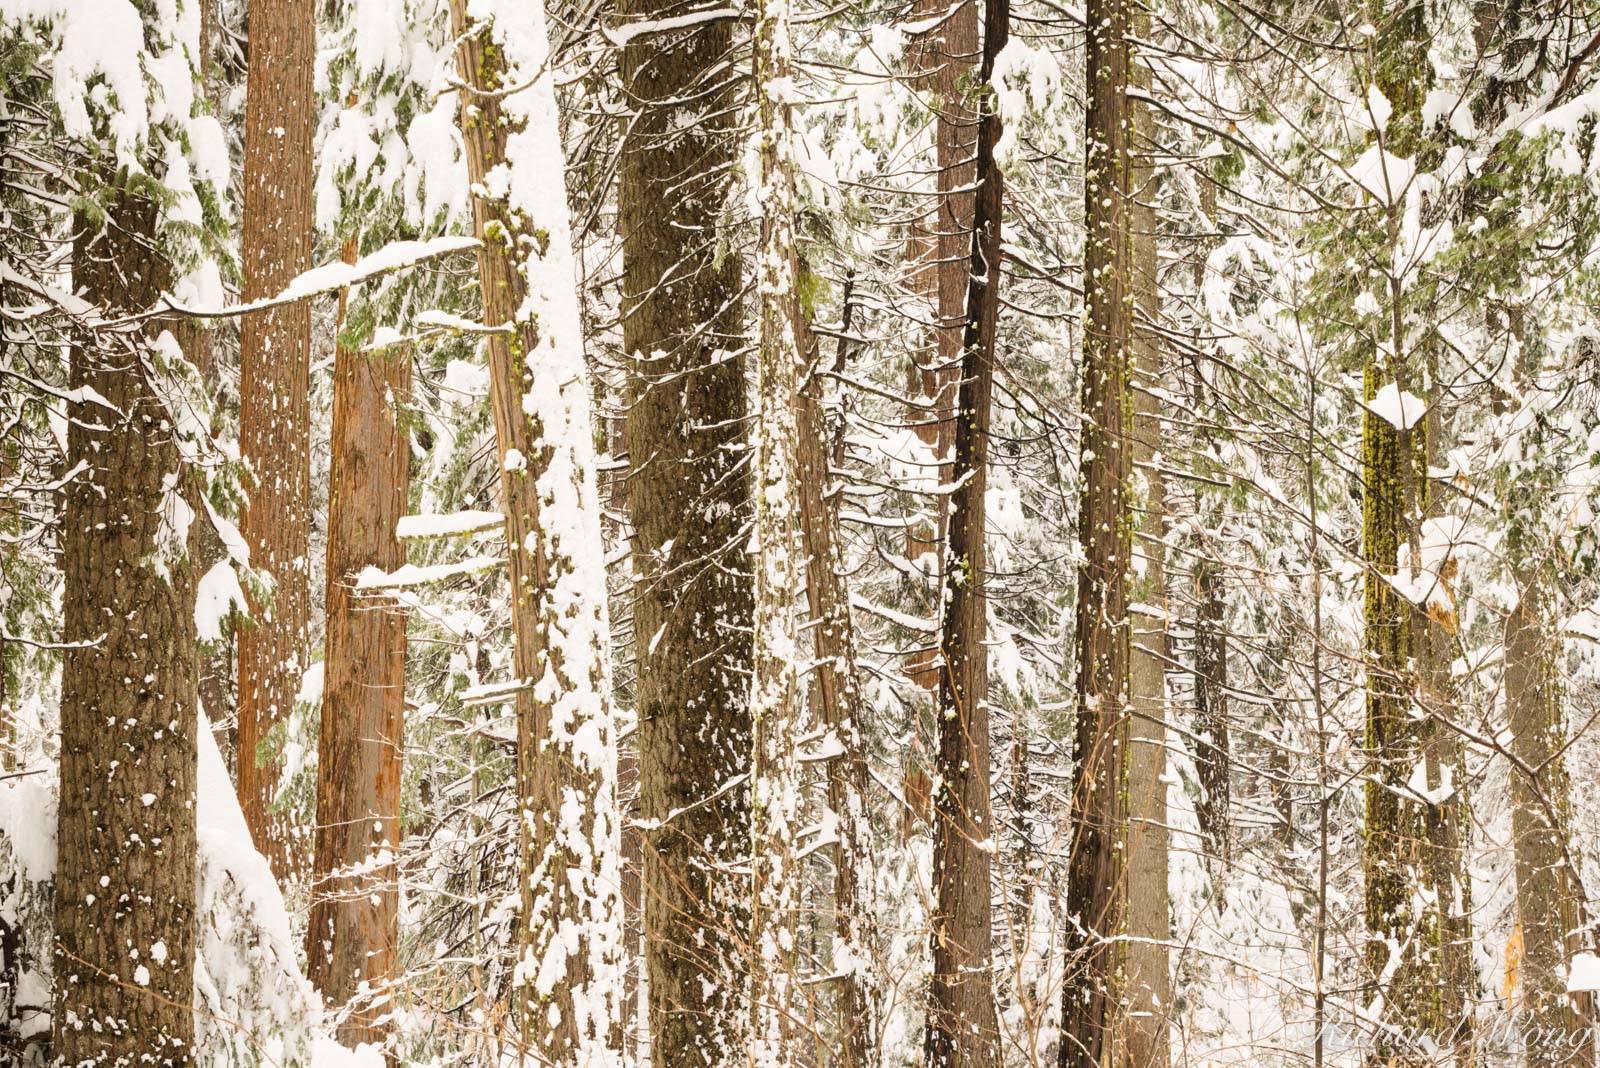 Giant Sequoia Forest Detail in Winter, Calaveras Big Trees State Park, California, photo, photo